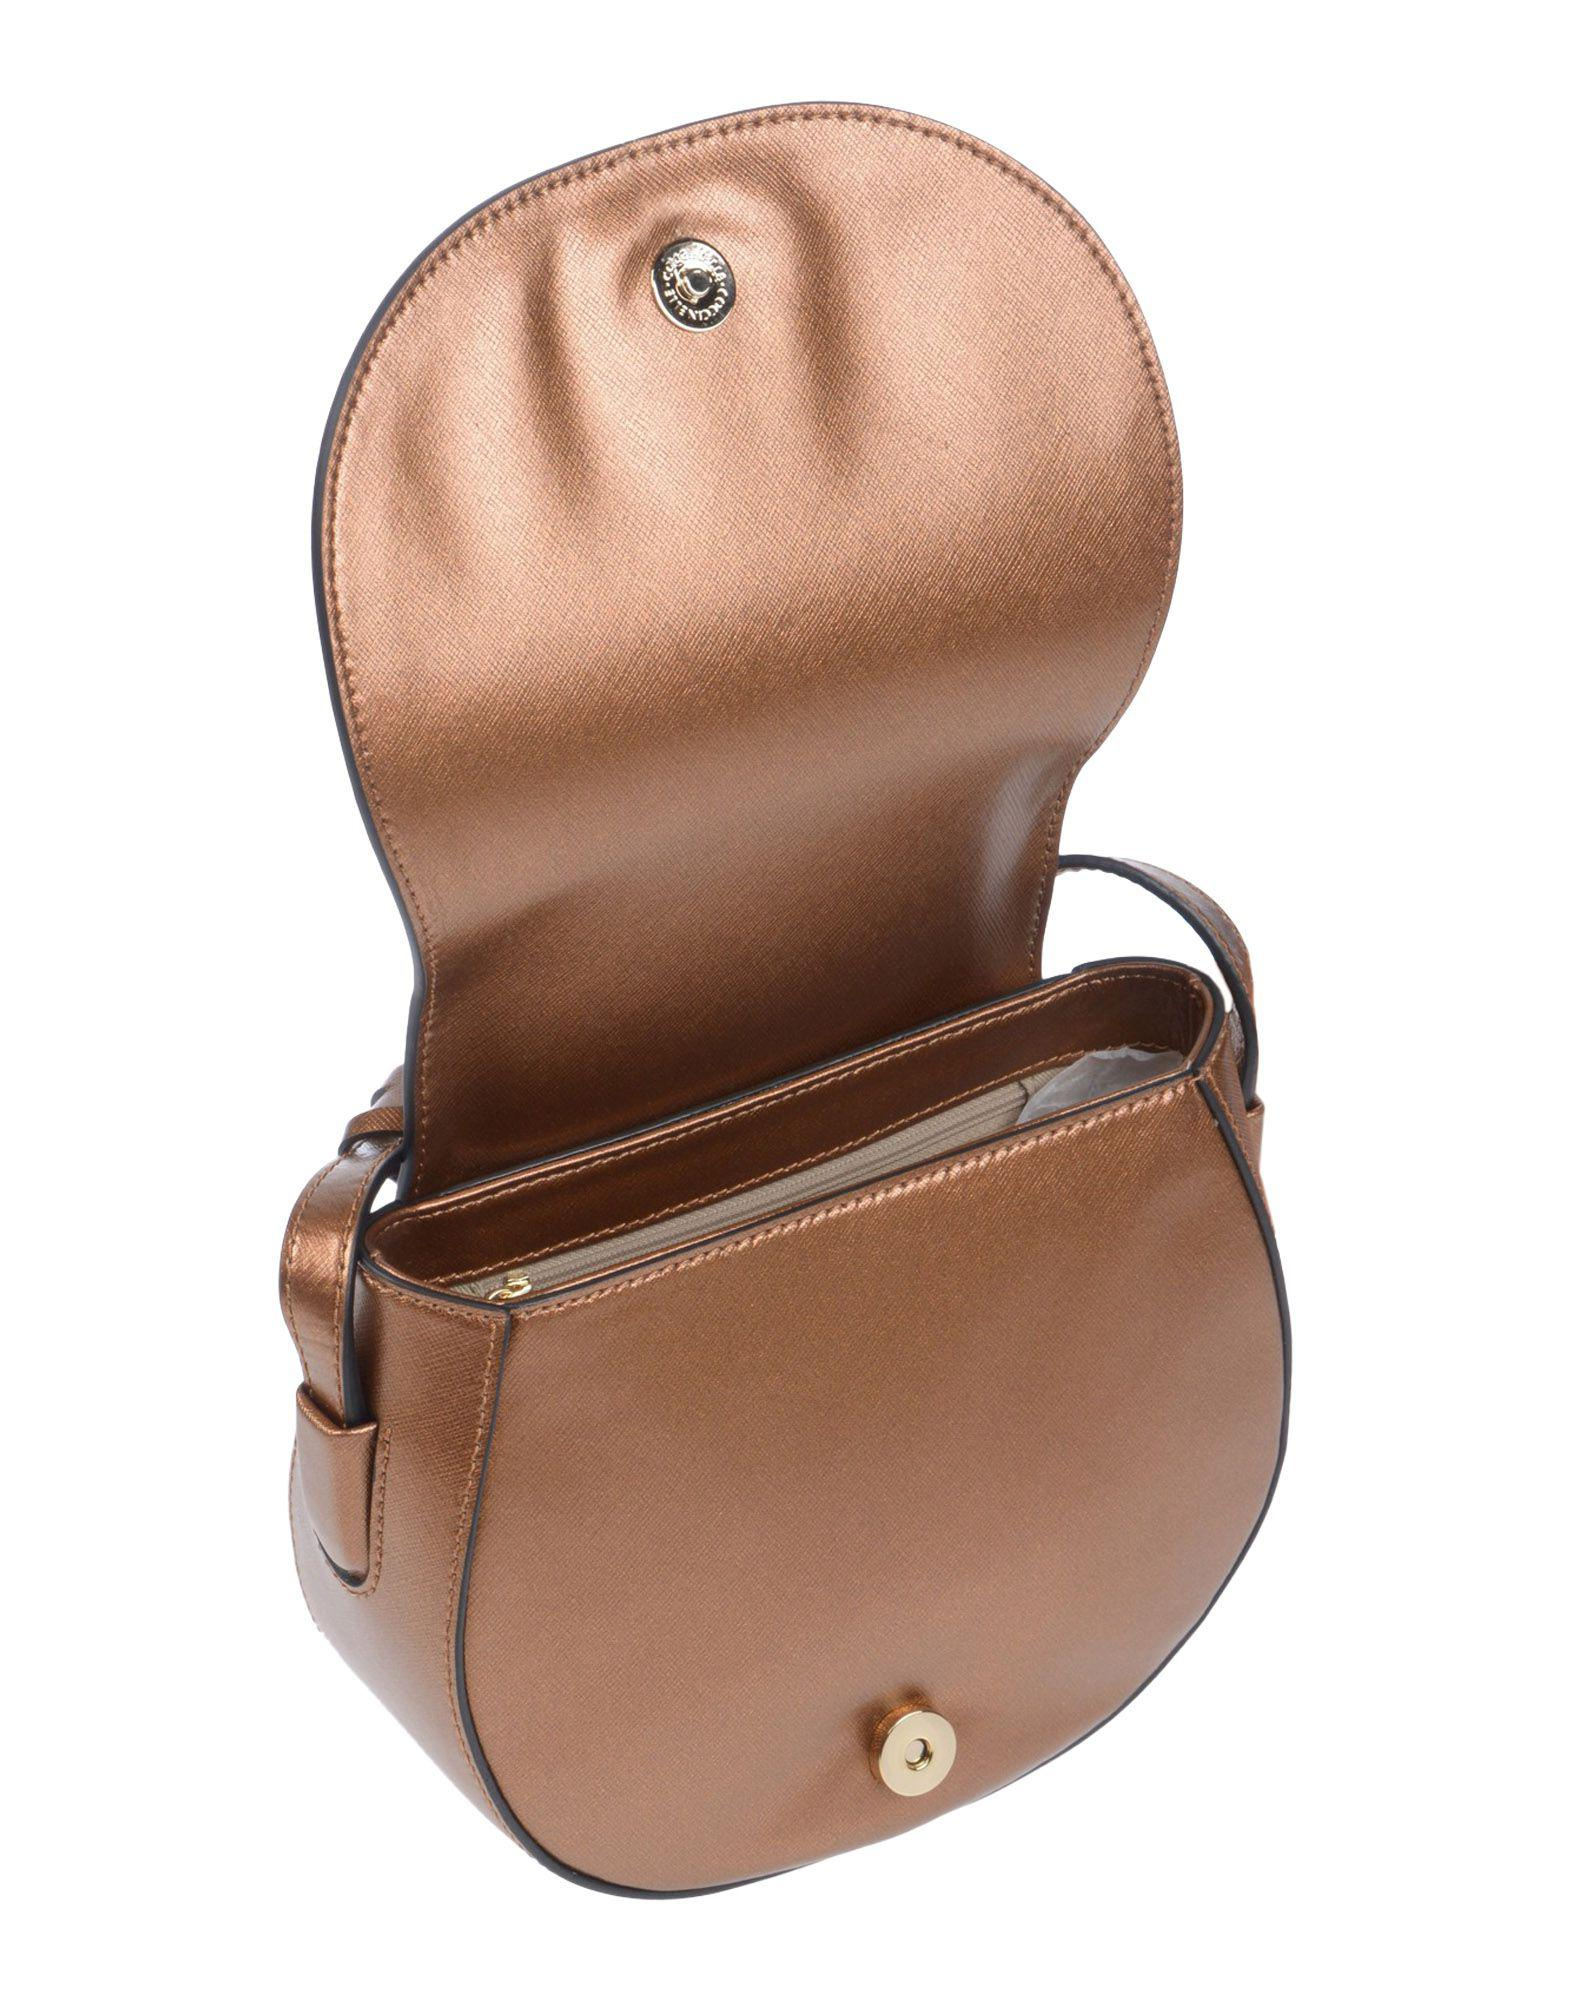 Coccinelle Leather Cross-body Bag in Bronze (Brown)